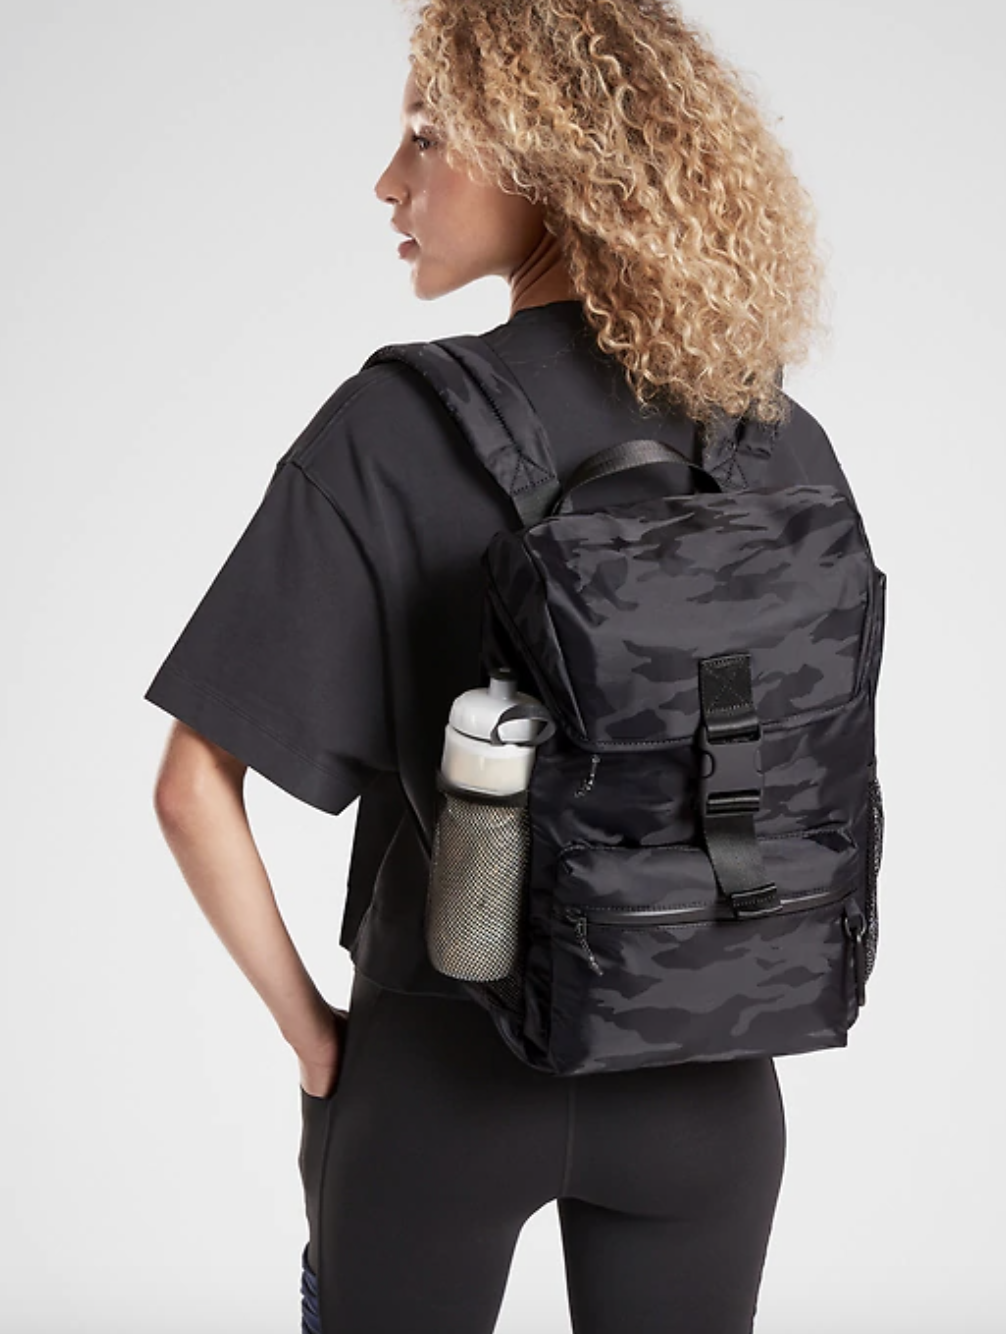 model wearing the lightweight backpack